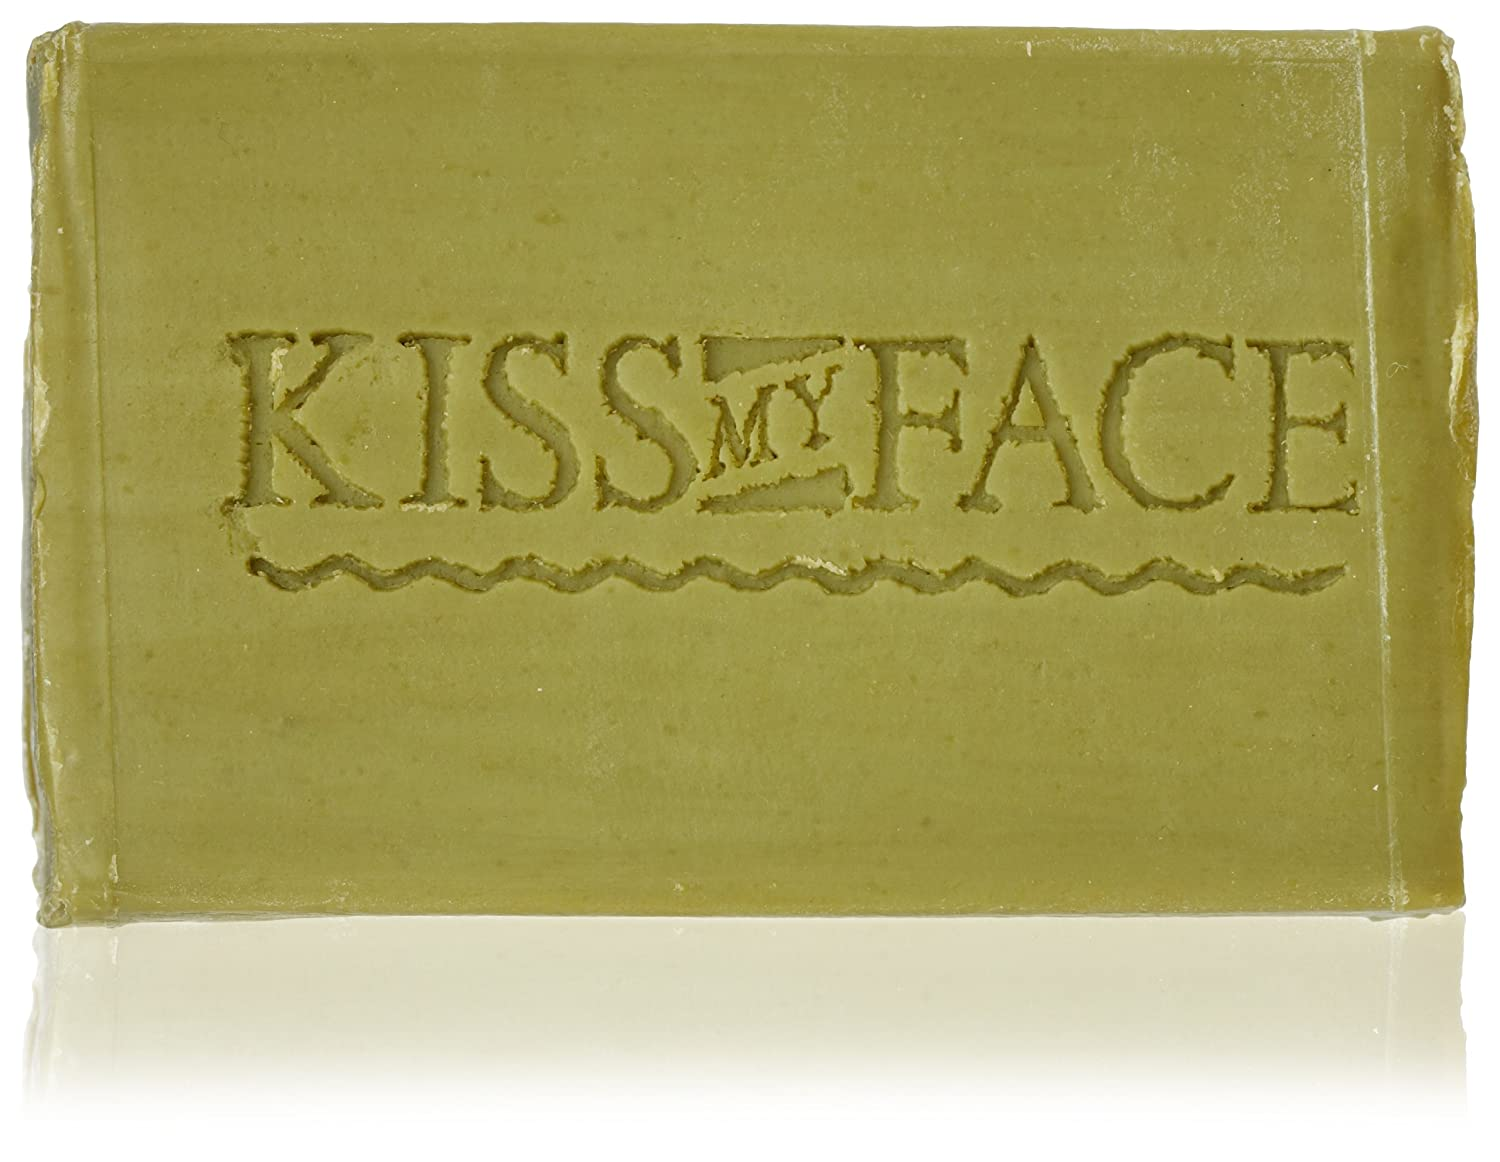 Kiss My Face Pure Olive Oil Bar Soap - 4 oz, 6 pack (image may vary)